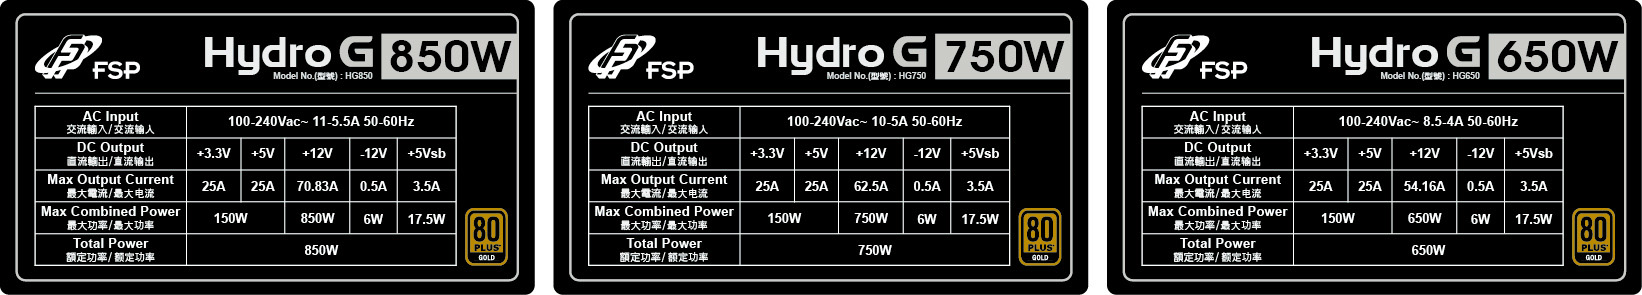 FSP Hydro G Series Rating